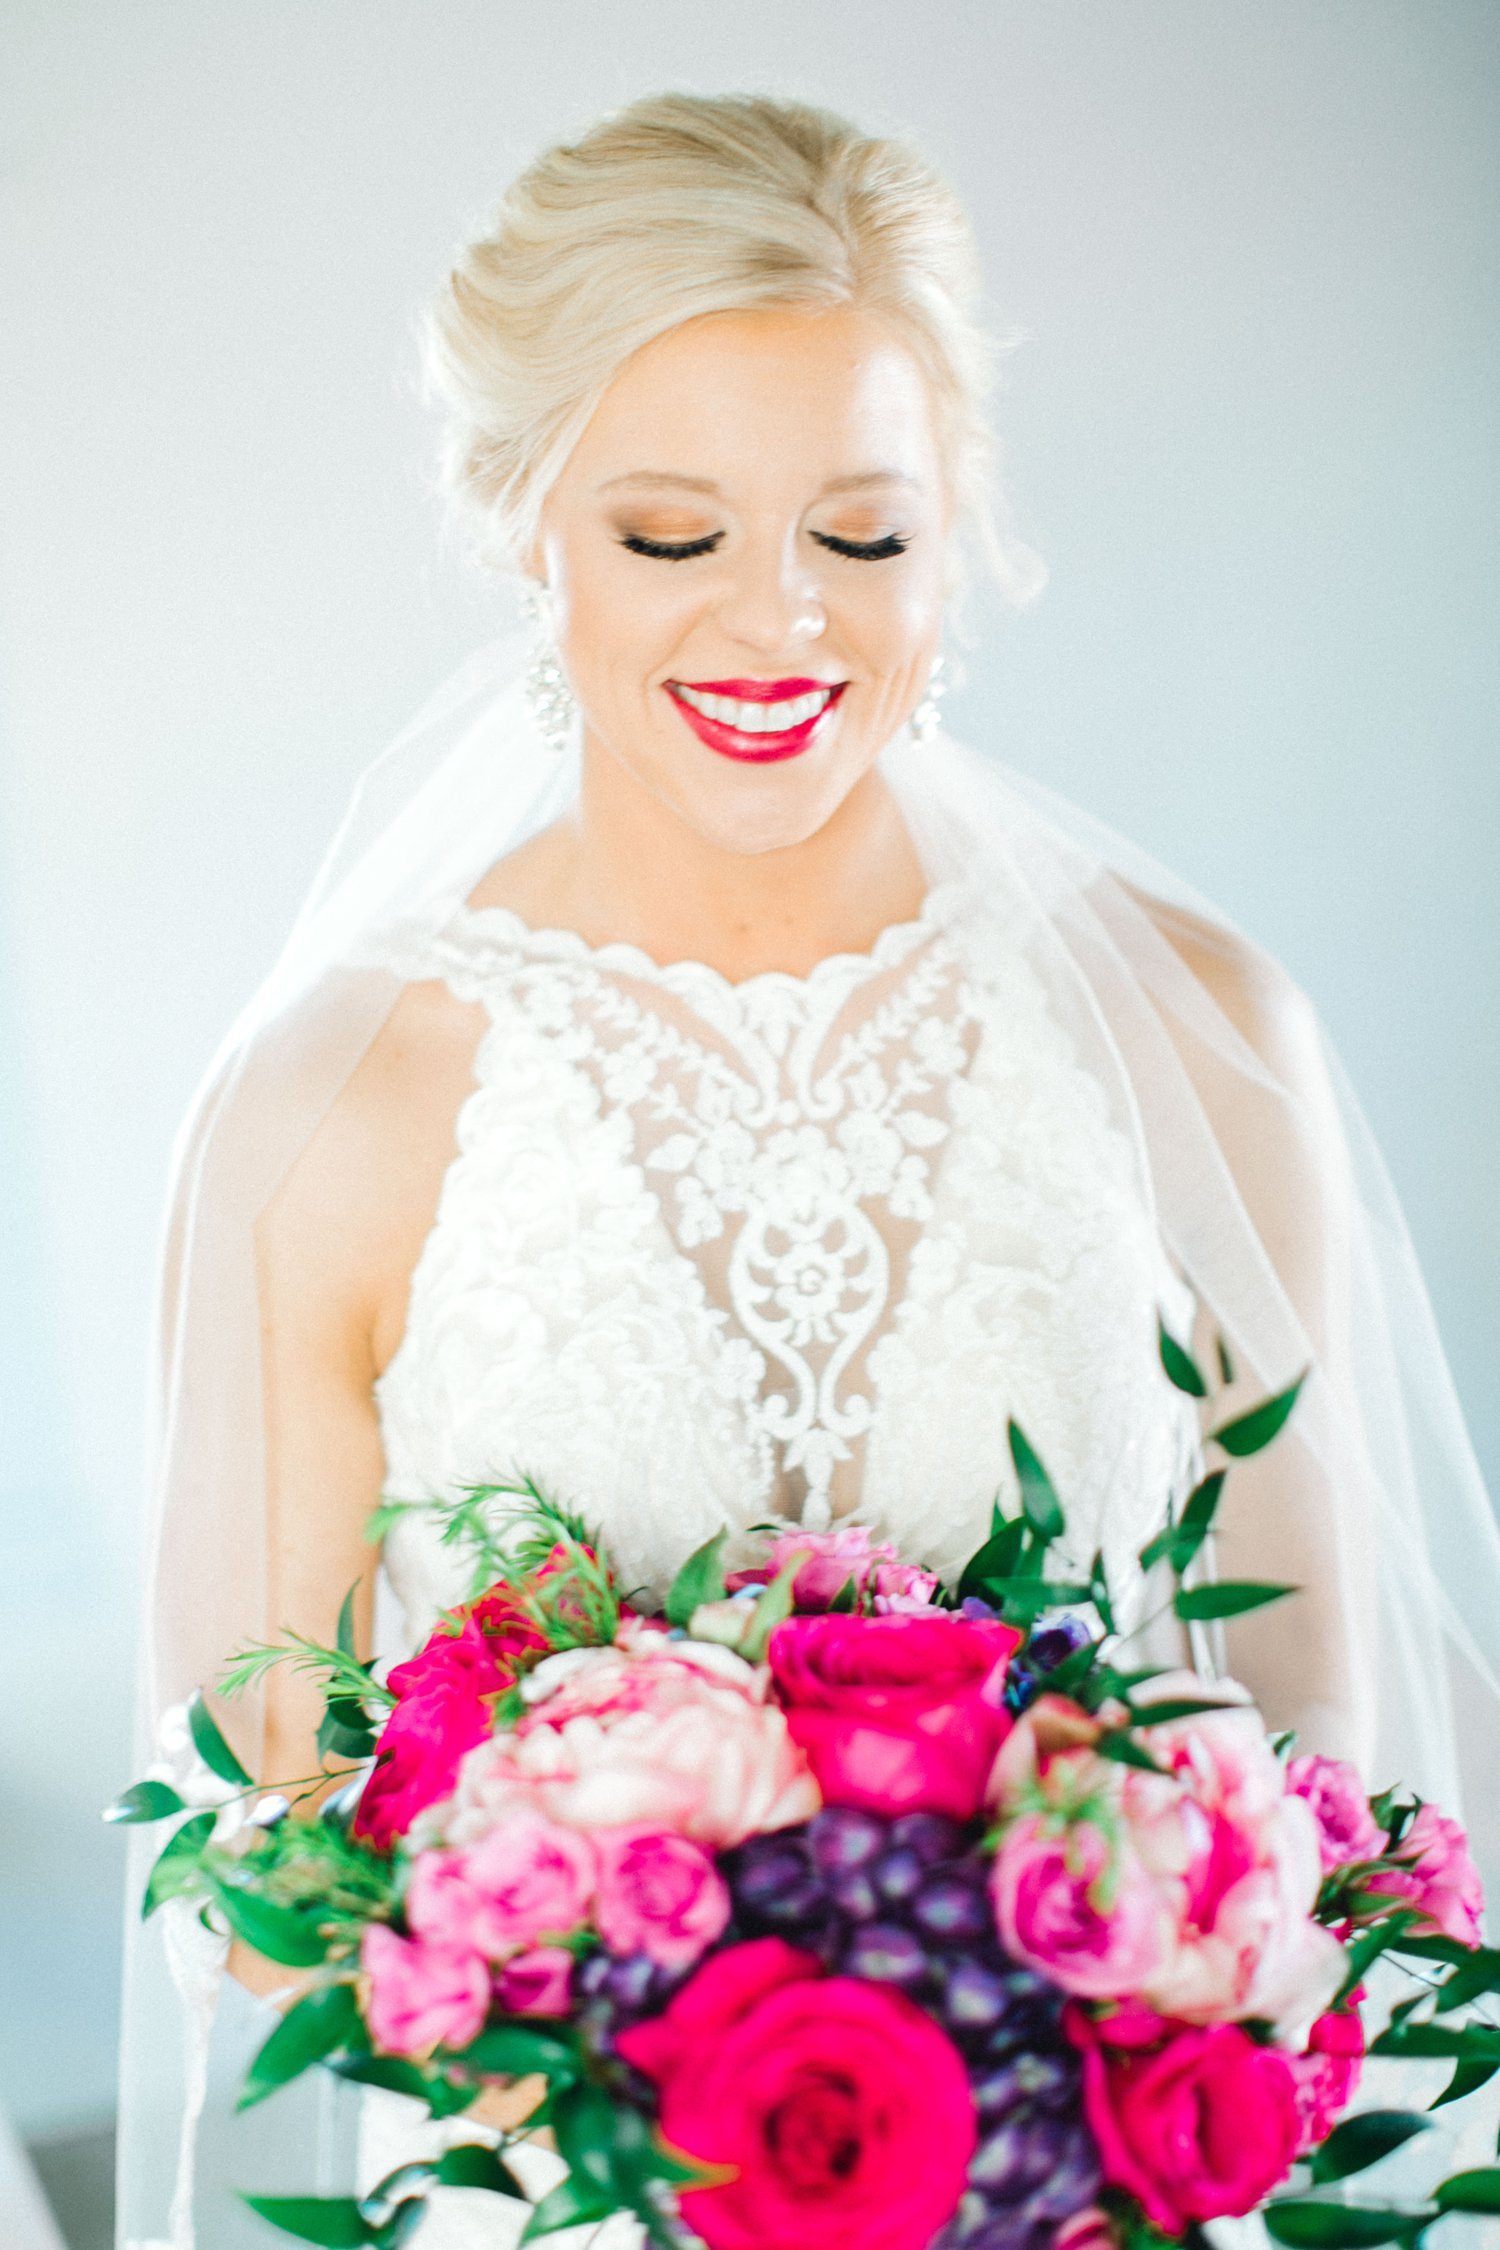 Jenna-evans-bridals-balmorhea-texas-fort-davis-wedding-photographer-lubbock-photographer__0029.jpg